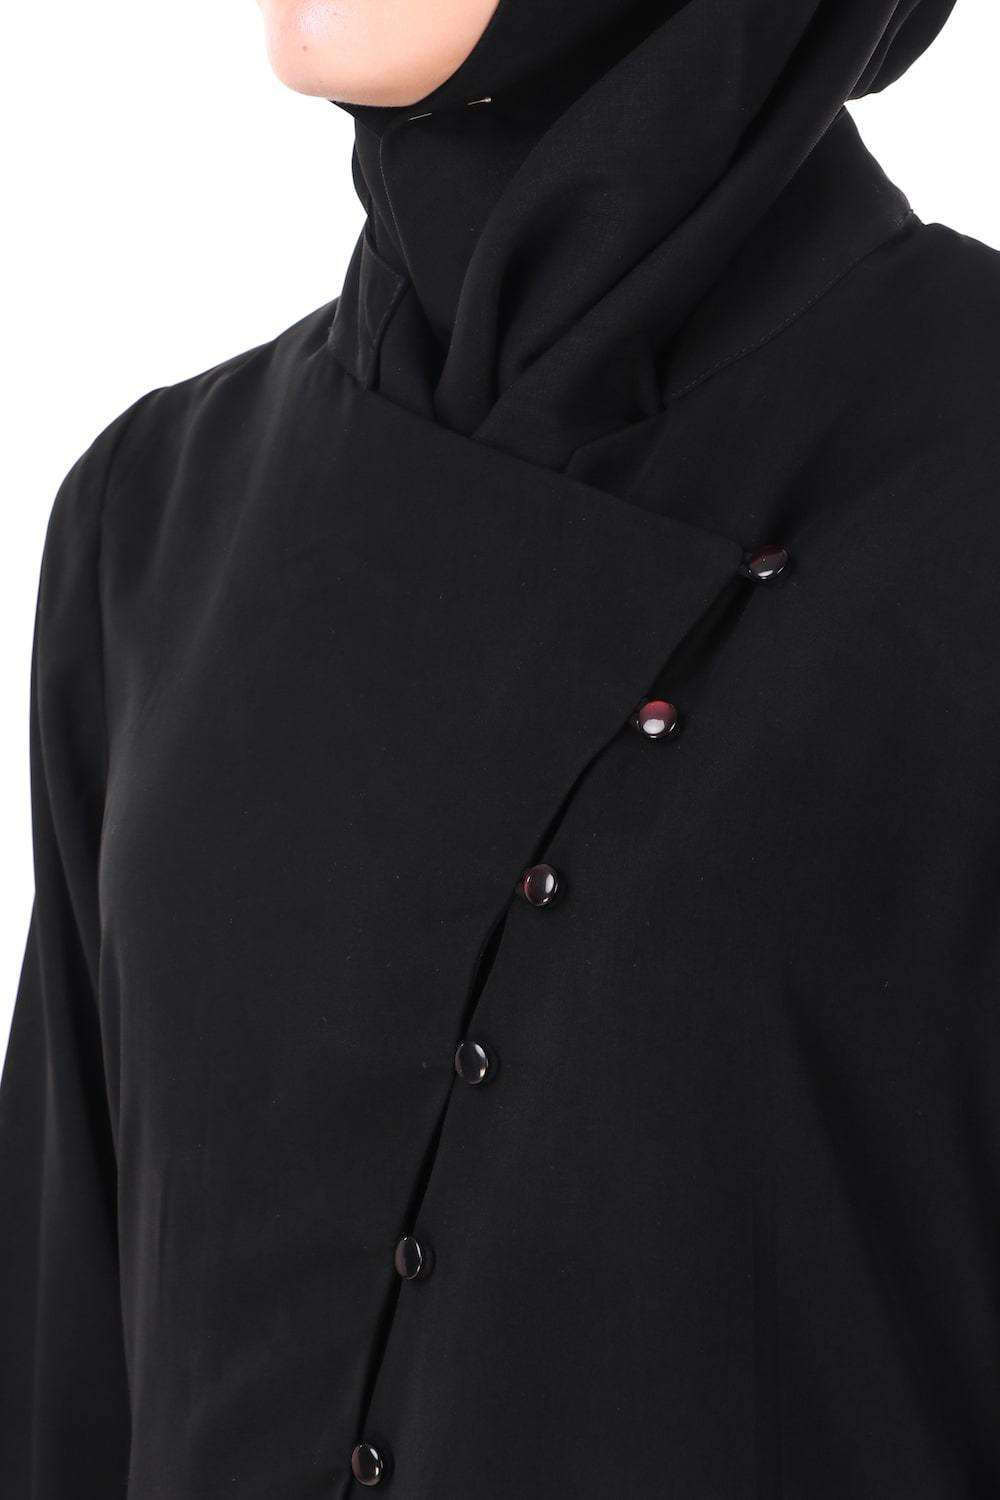 Dual Layer Cross Over Jacket Abaya